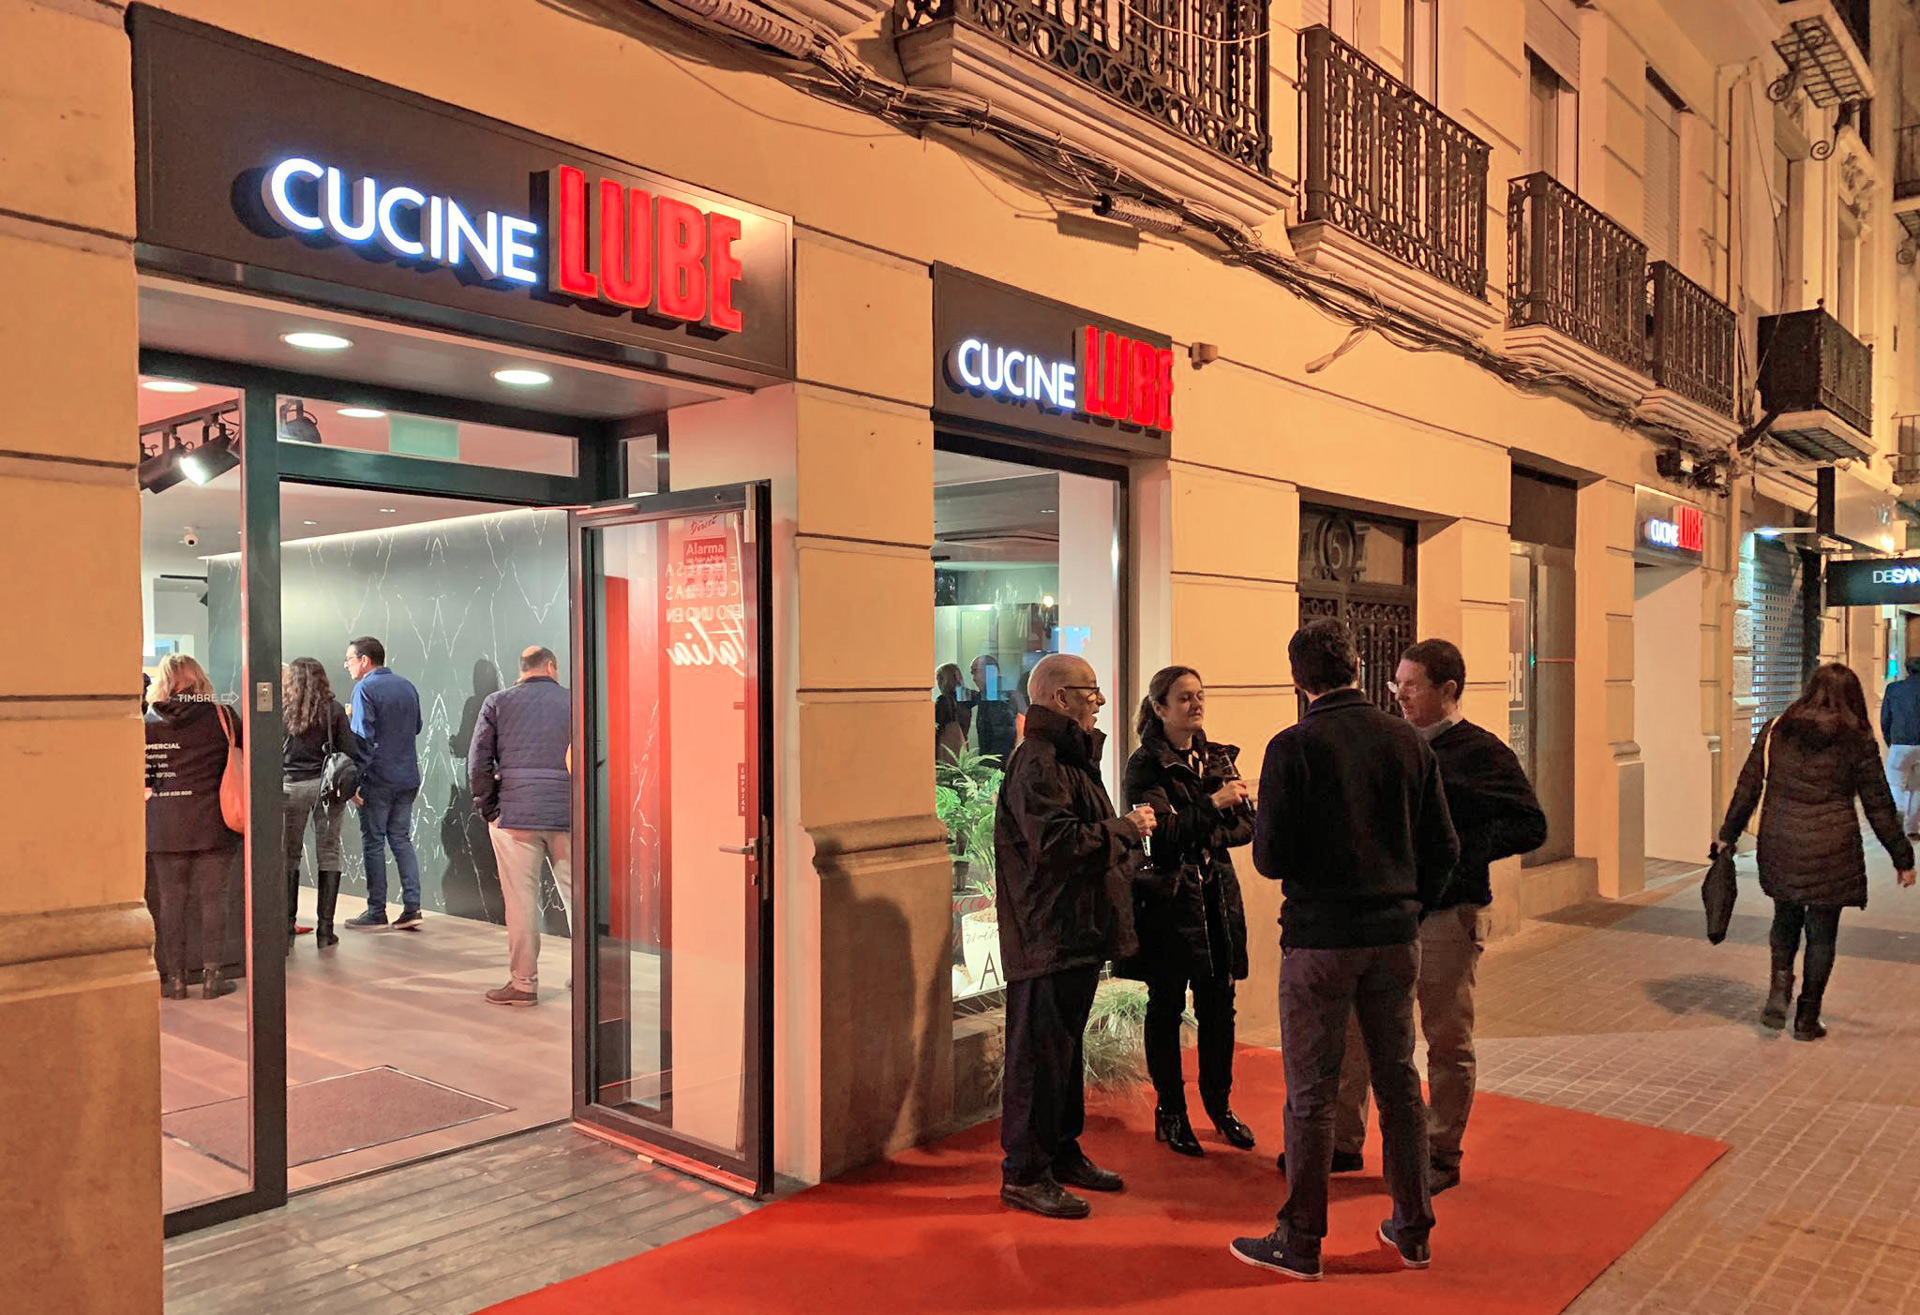 Spain, inaugurated a wonderful LUBE Store in Valencia - Cucine LUBE